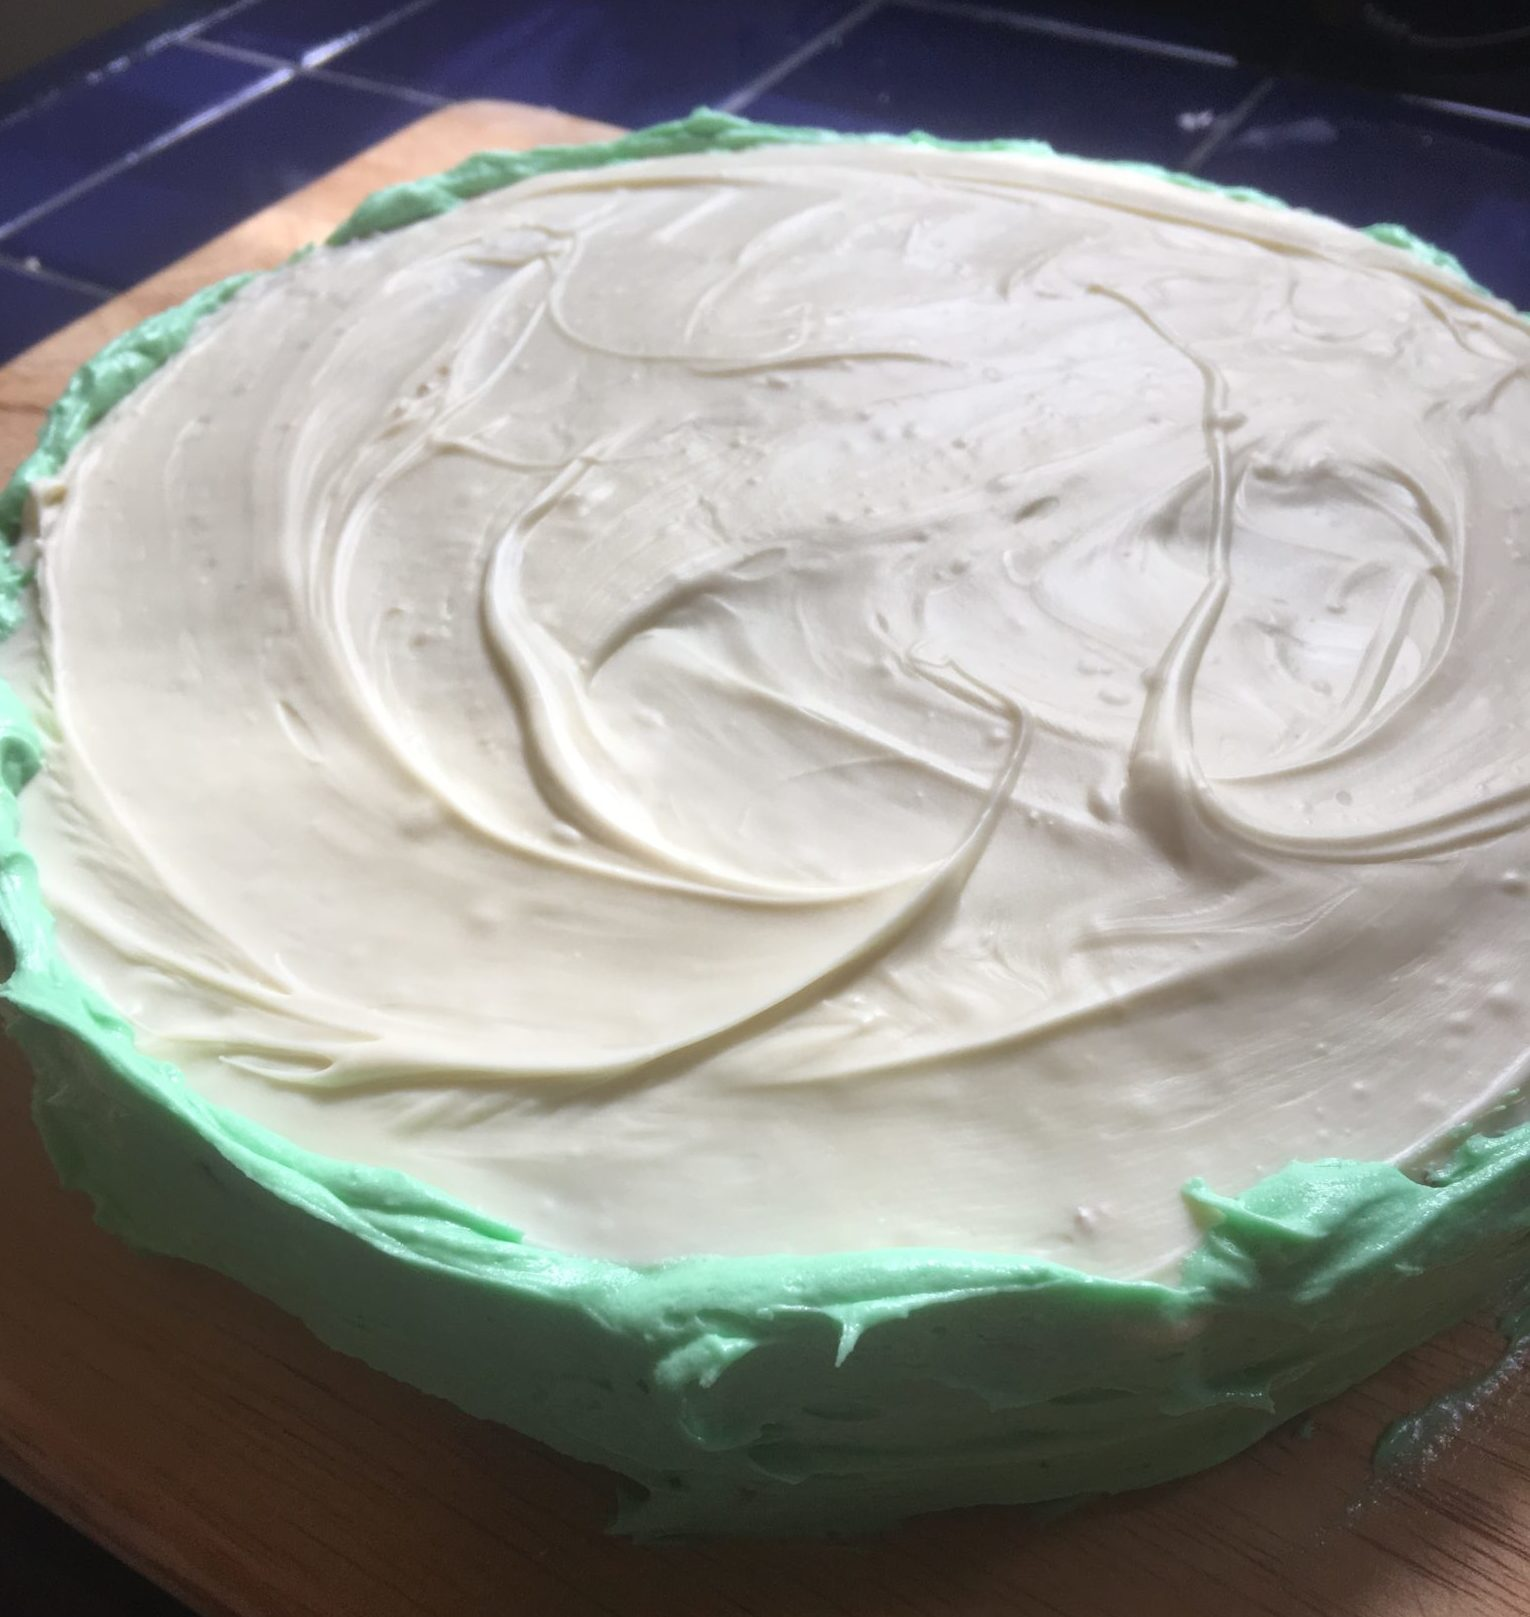 Green icing and white chocolate form the rind of the watermelon cake